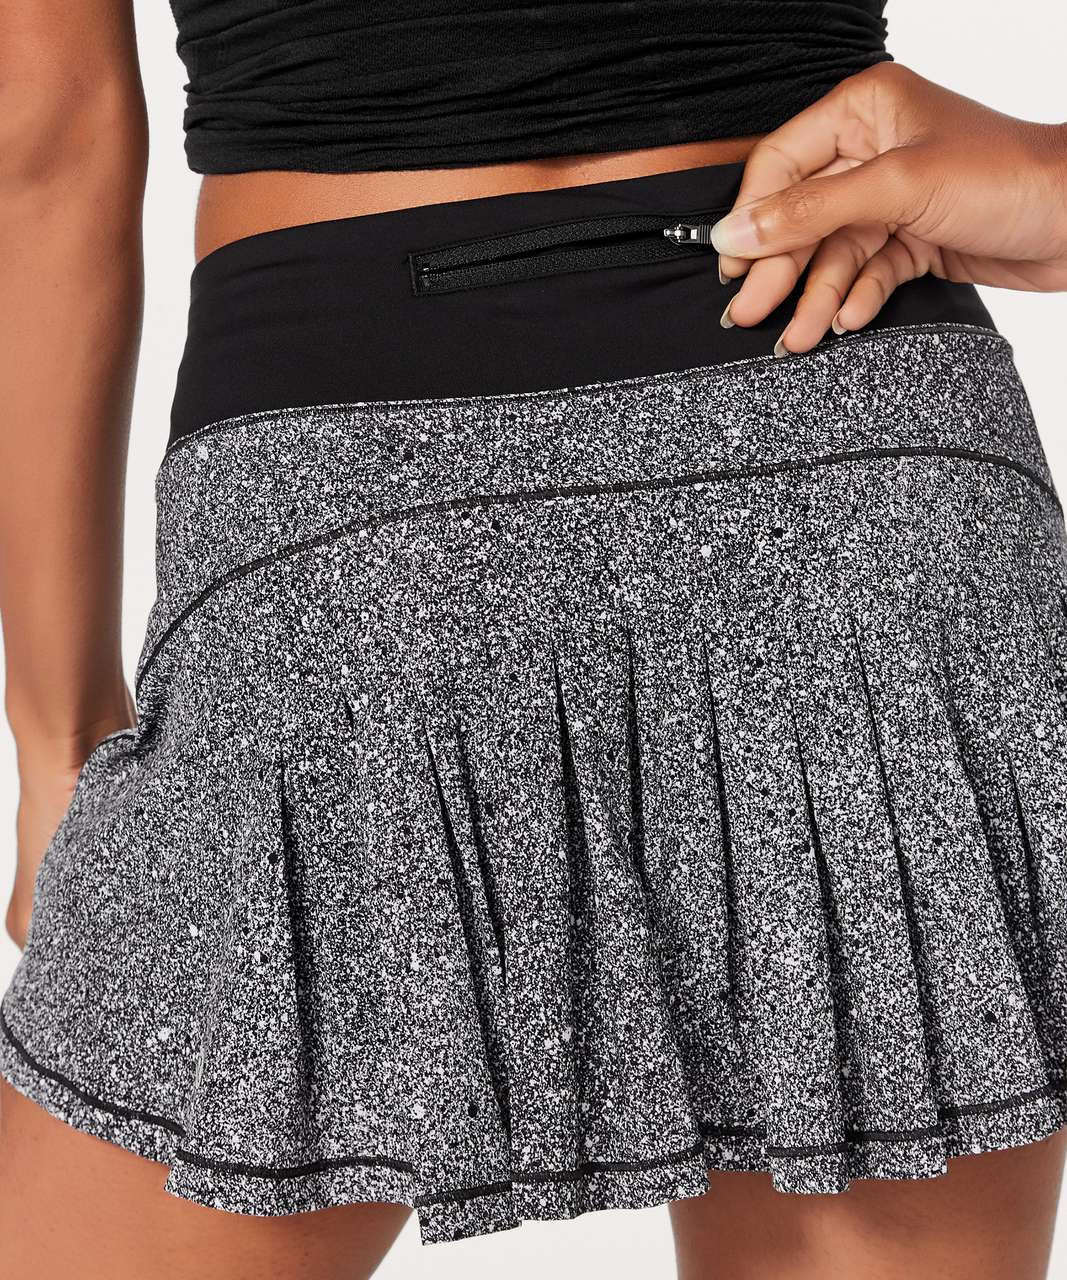 "Lululemon Circuit Breaker Skirt II (Regular) (13"") - Luminesce Splatter White Black / Black"